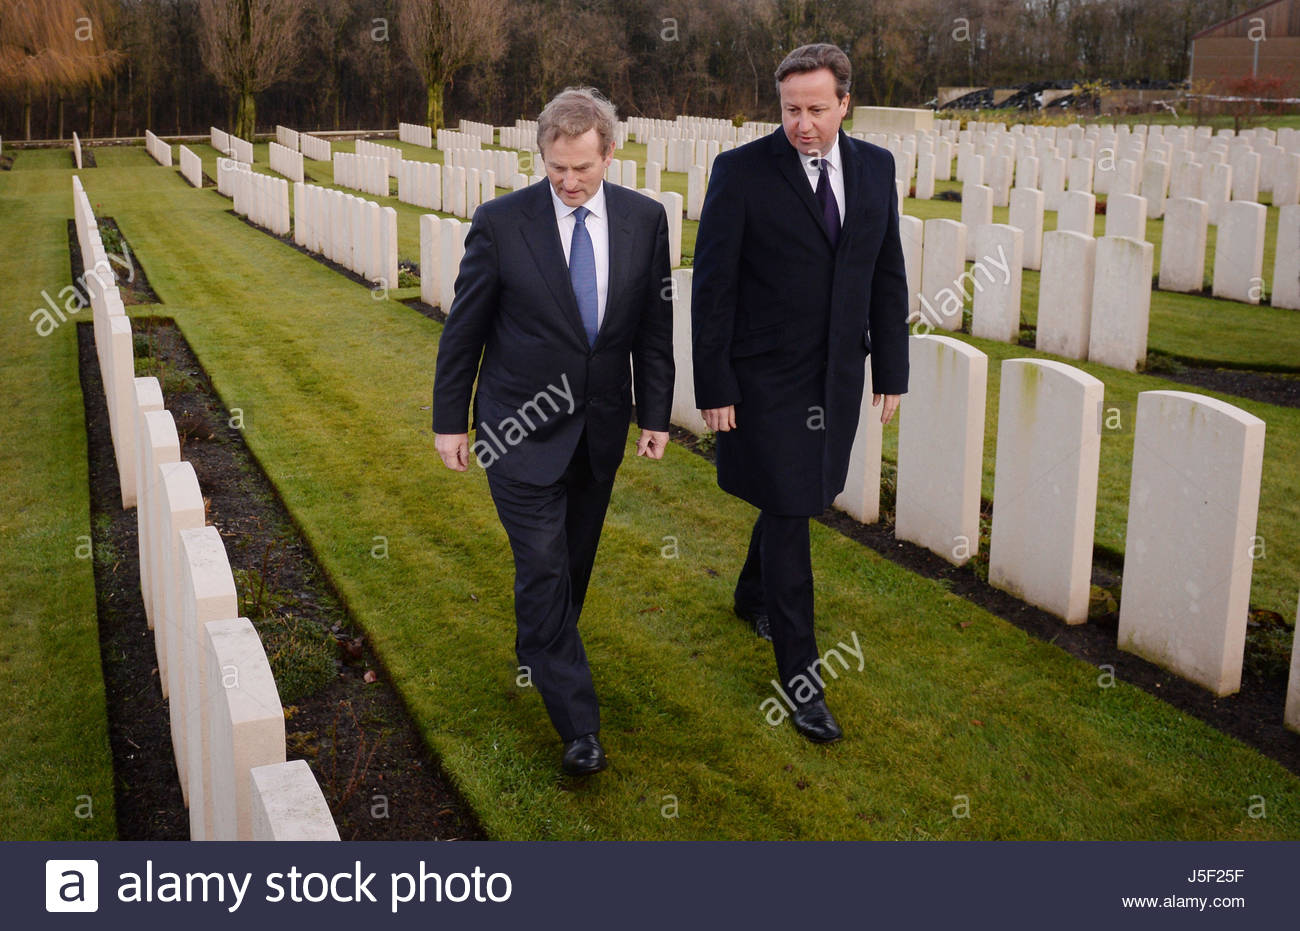 File photo dated 19/12/13 of Prime Minister David Cameron and Irish Prime Minister Taoiseach Enda Kenny at Wytschaete Stock Photo